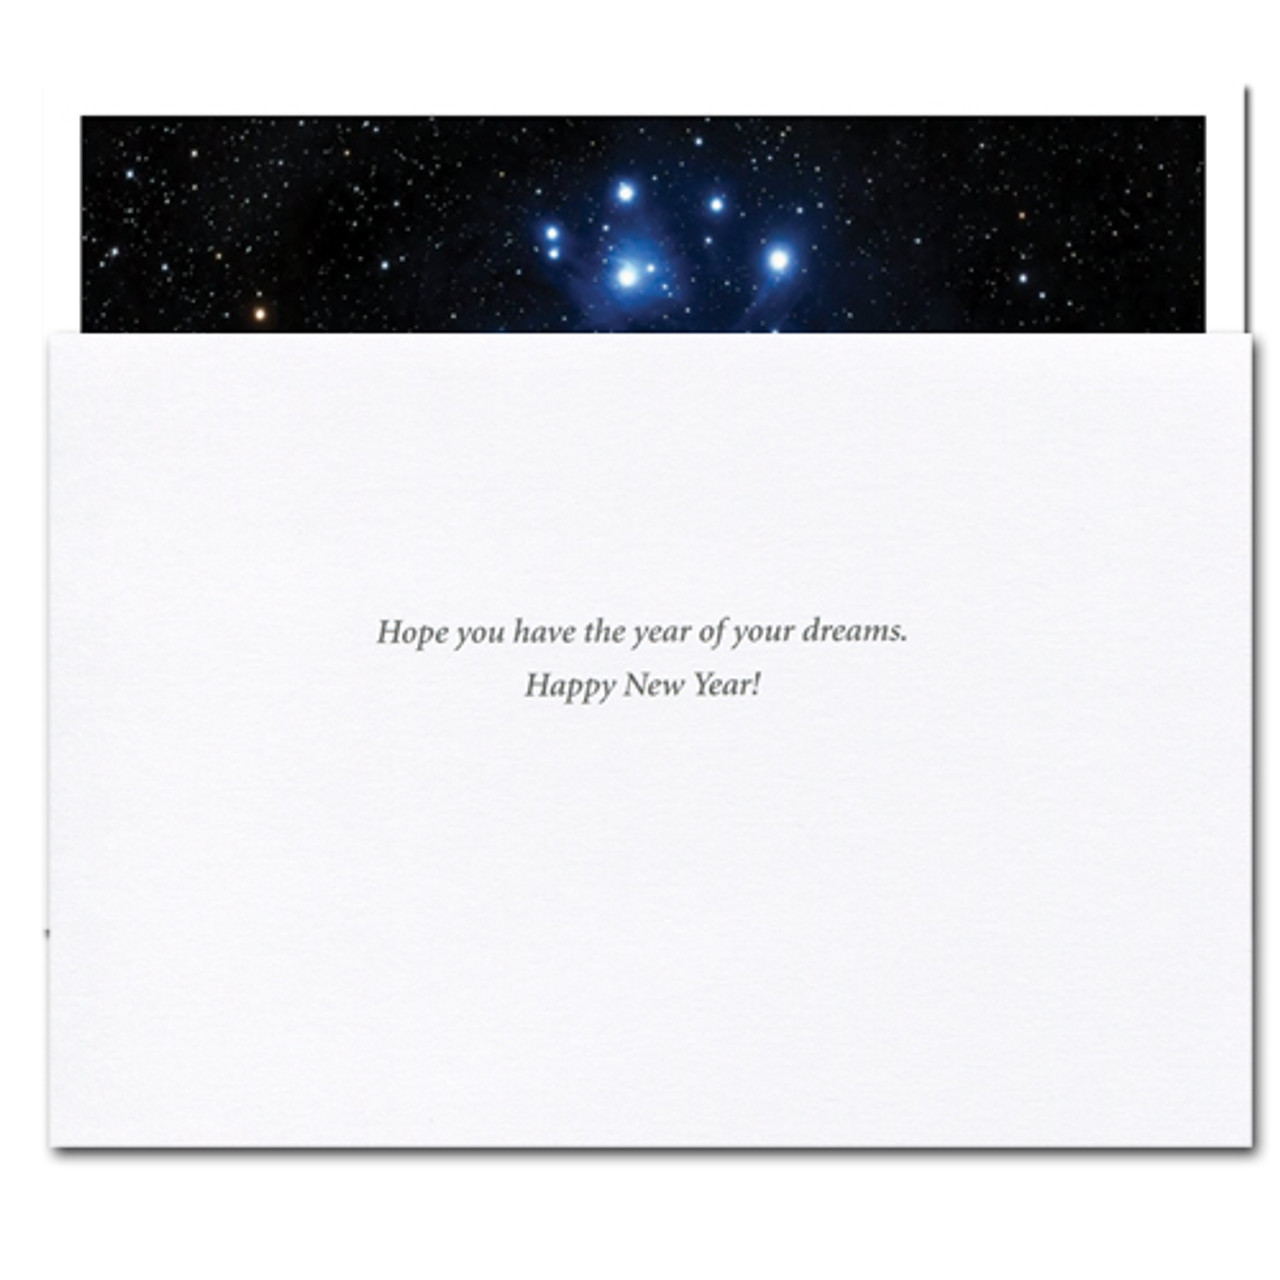 """Inside of Business New Year Card """"Sight of Stars"""" reads, """"Hope you have the year of your dreams.  Happy New Year!"""""""